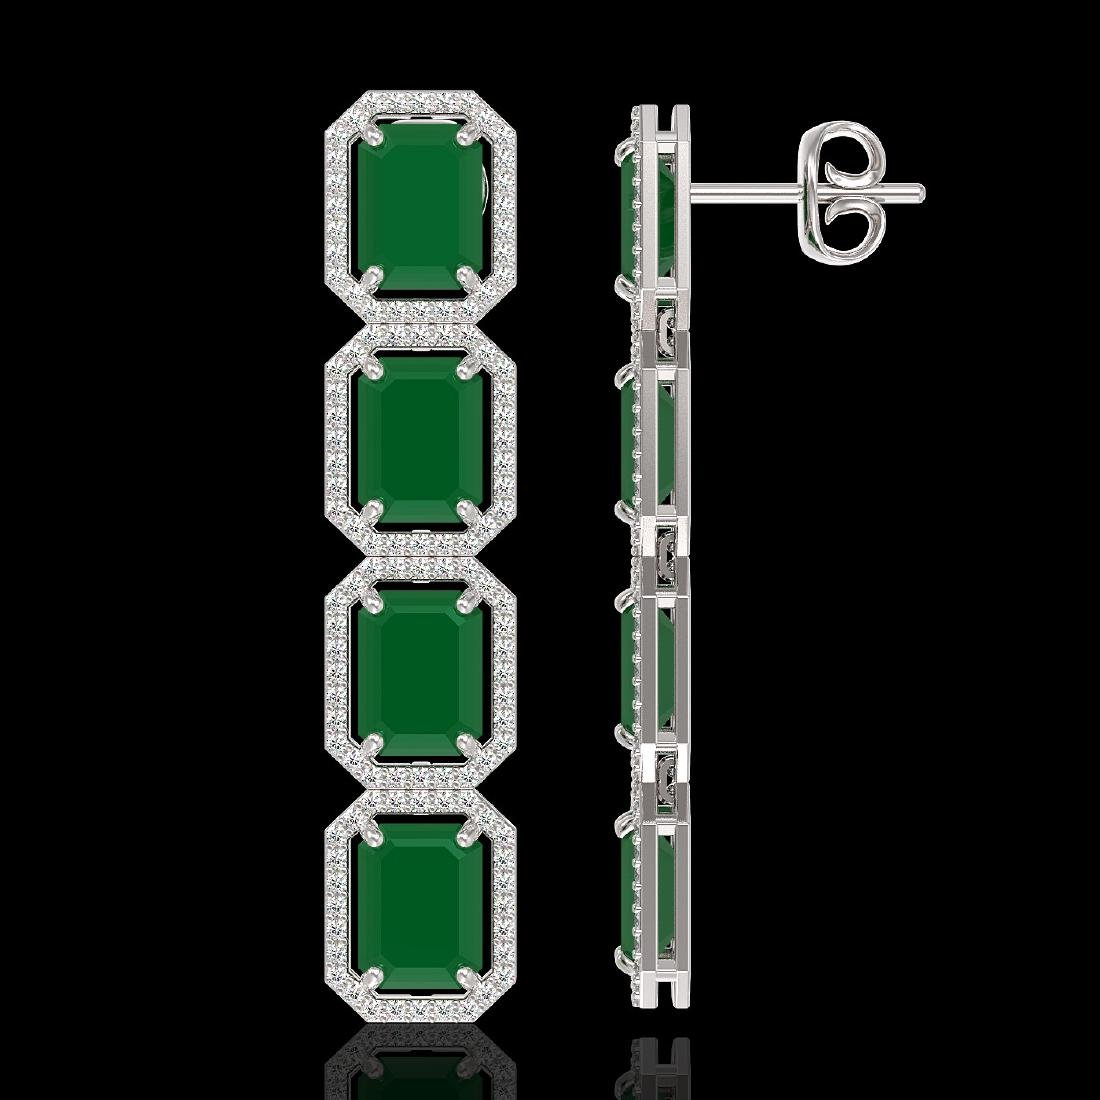 20.59 CTW Emerald & Diamond Halo Earrings 10K White - 2